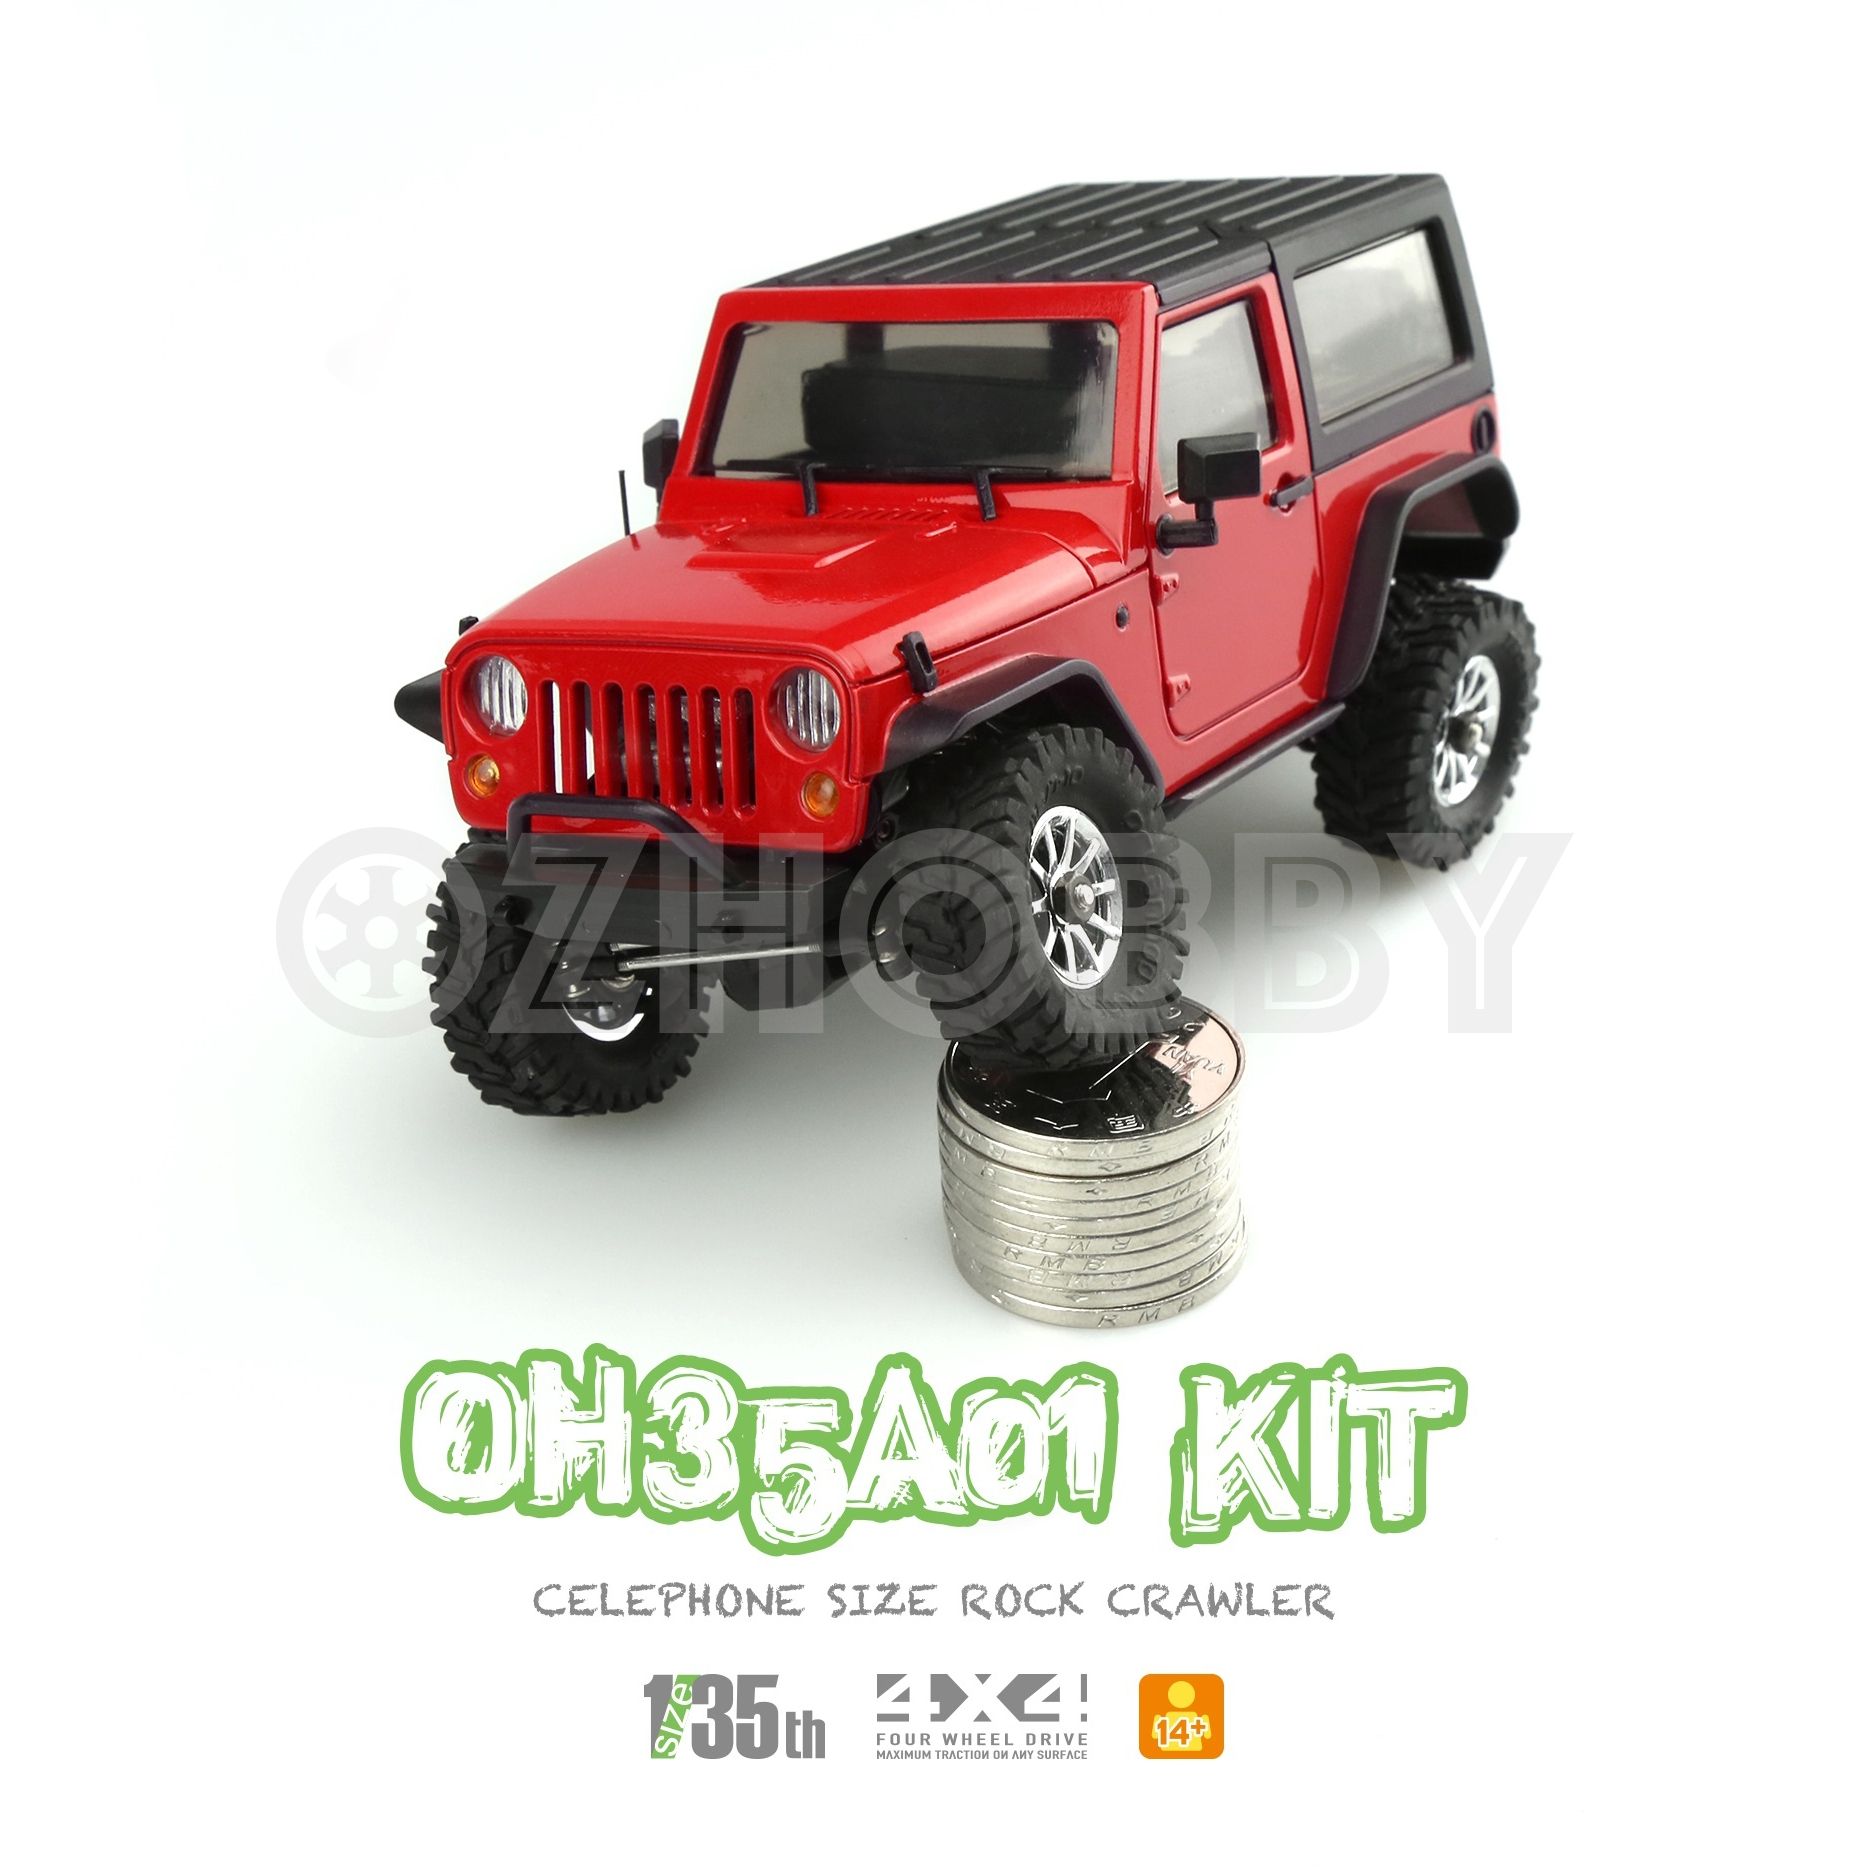 Orlandoo Hunter 1 35 Rc Crawler Assembly Kit Oh35a01 Jeep Wrangler Electronic Combo Set Ozhobby Net